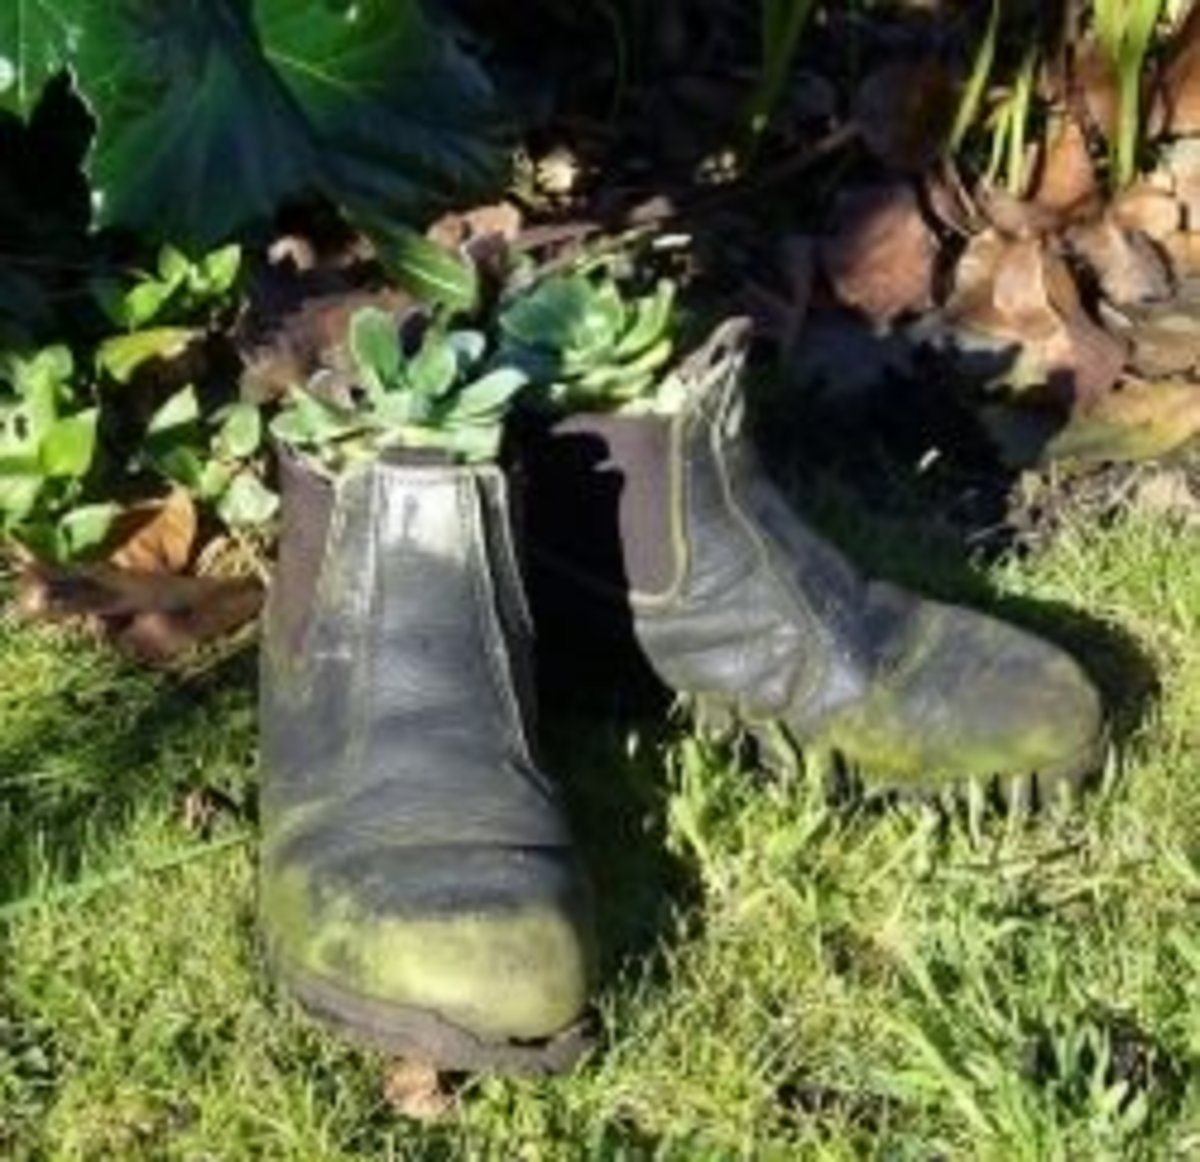 Old boots used as flower planters